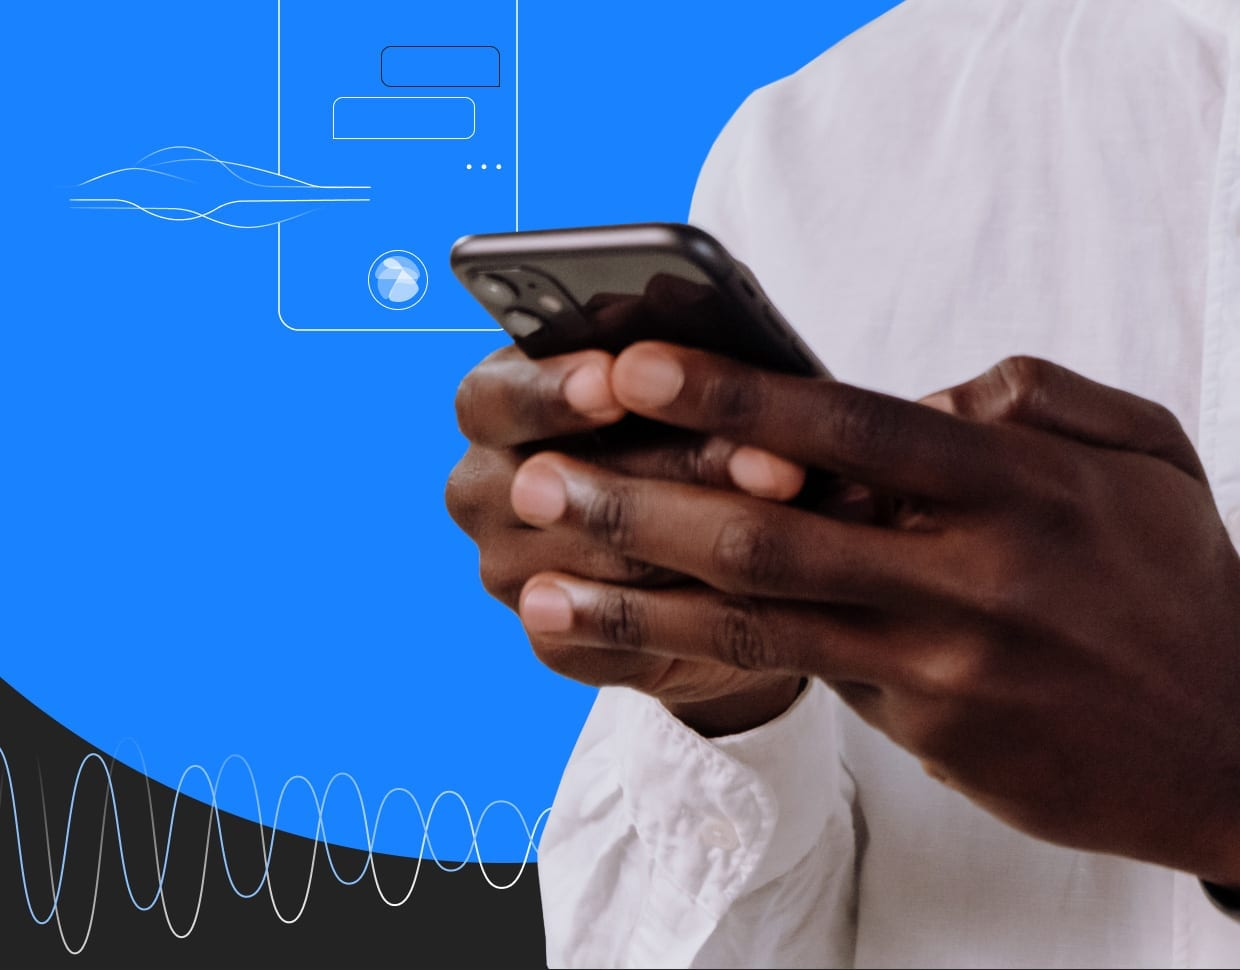 Conversational interfaces: making healthcare more accessible